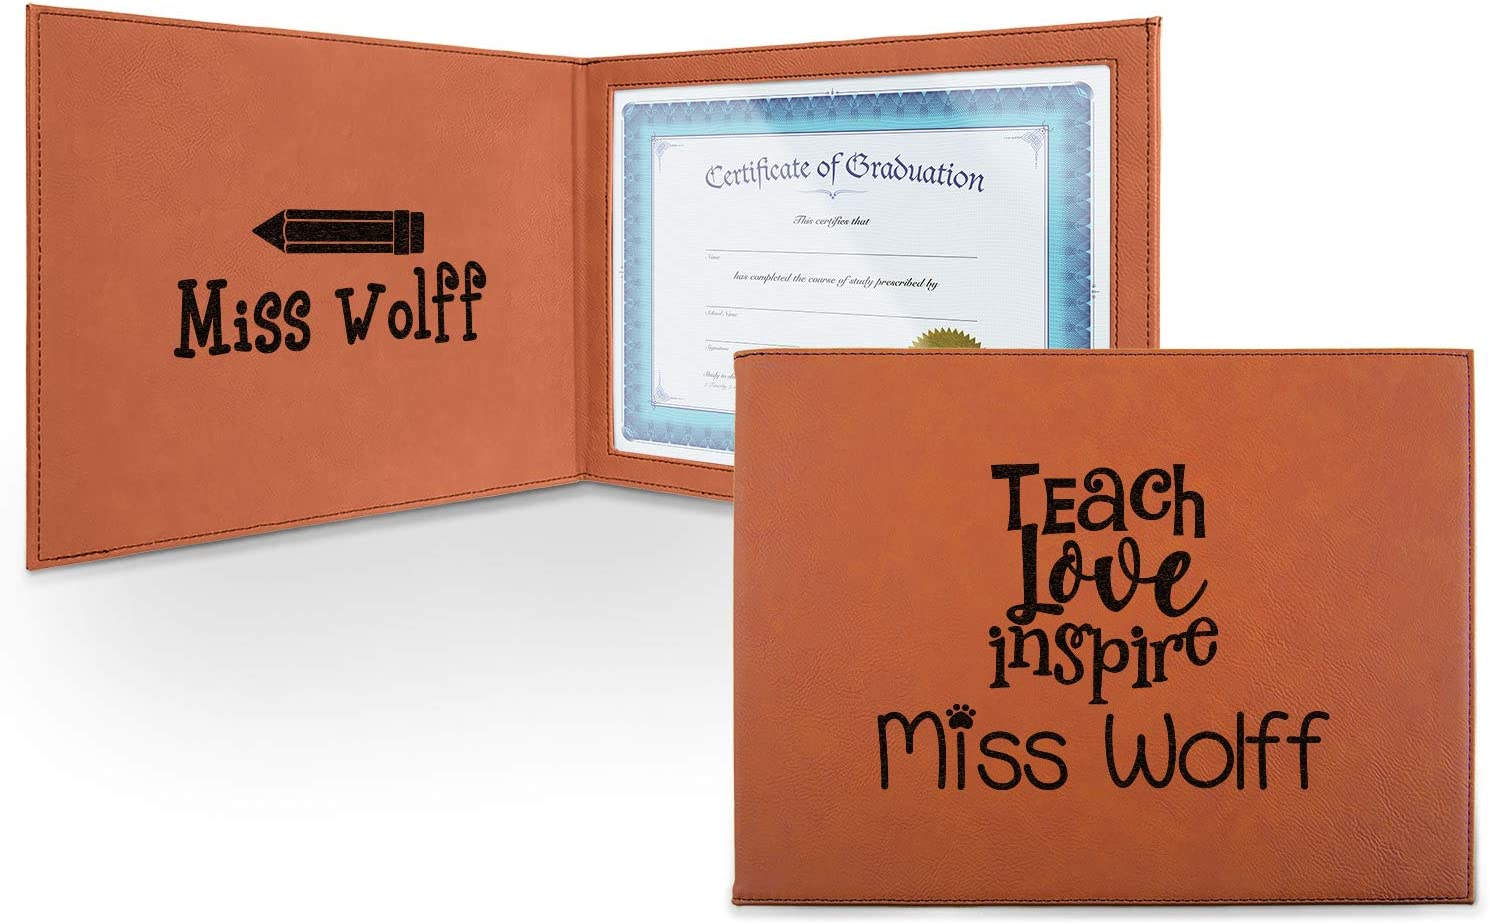 Teacher Attention brand Quote Leatherette Certificate Holder Inside - Direct store and Front